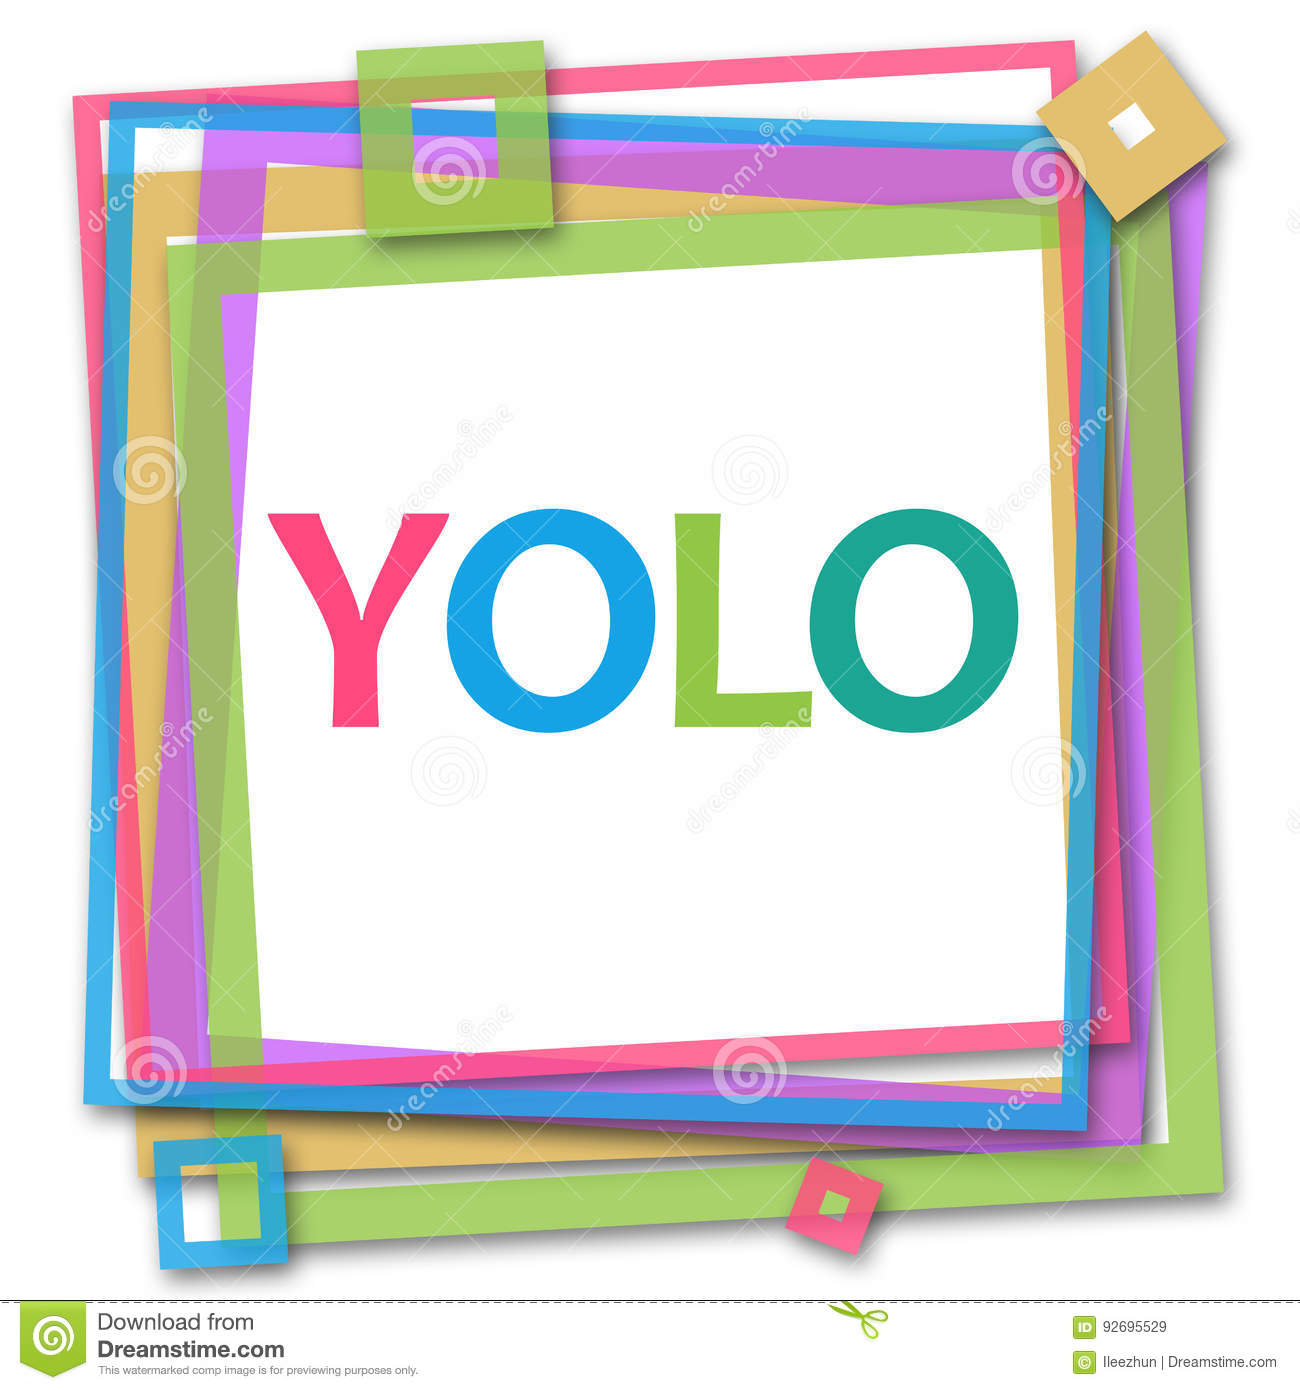 YOLO - You Only Live Once Colorful Frame Stock Illustration